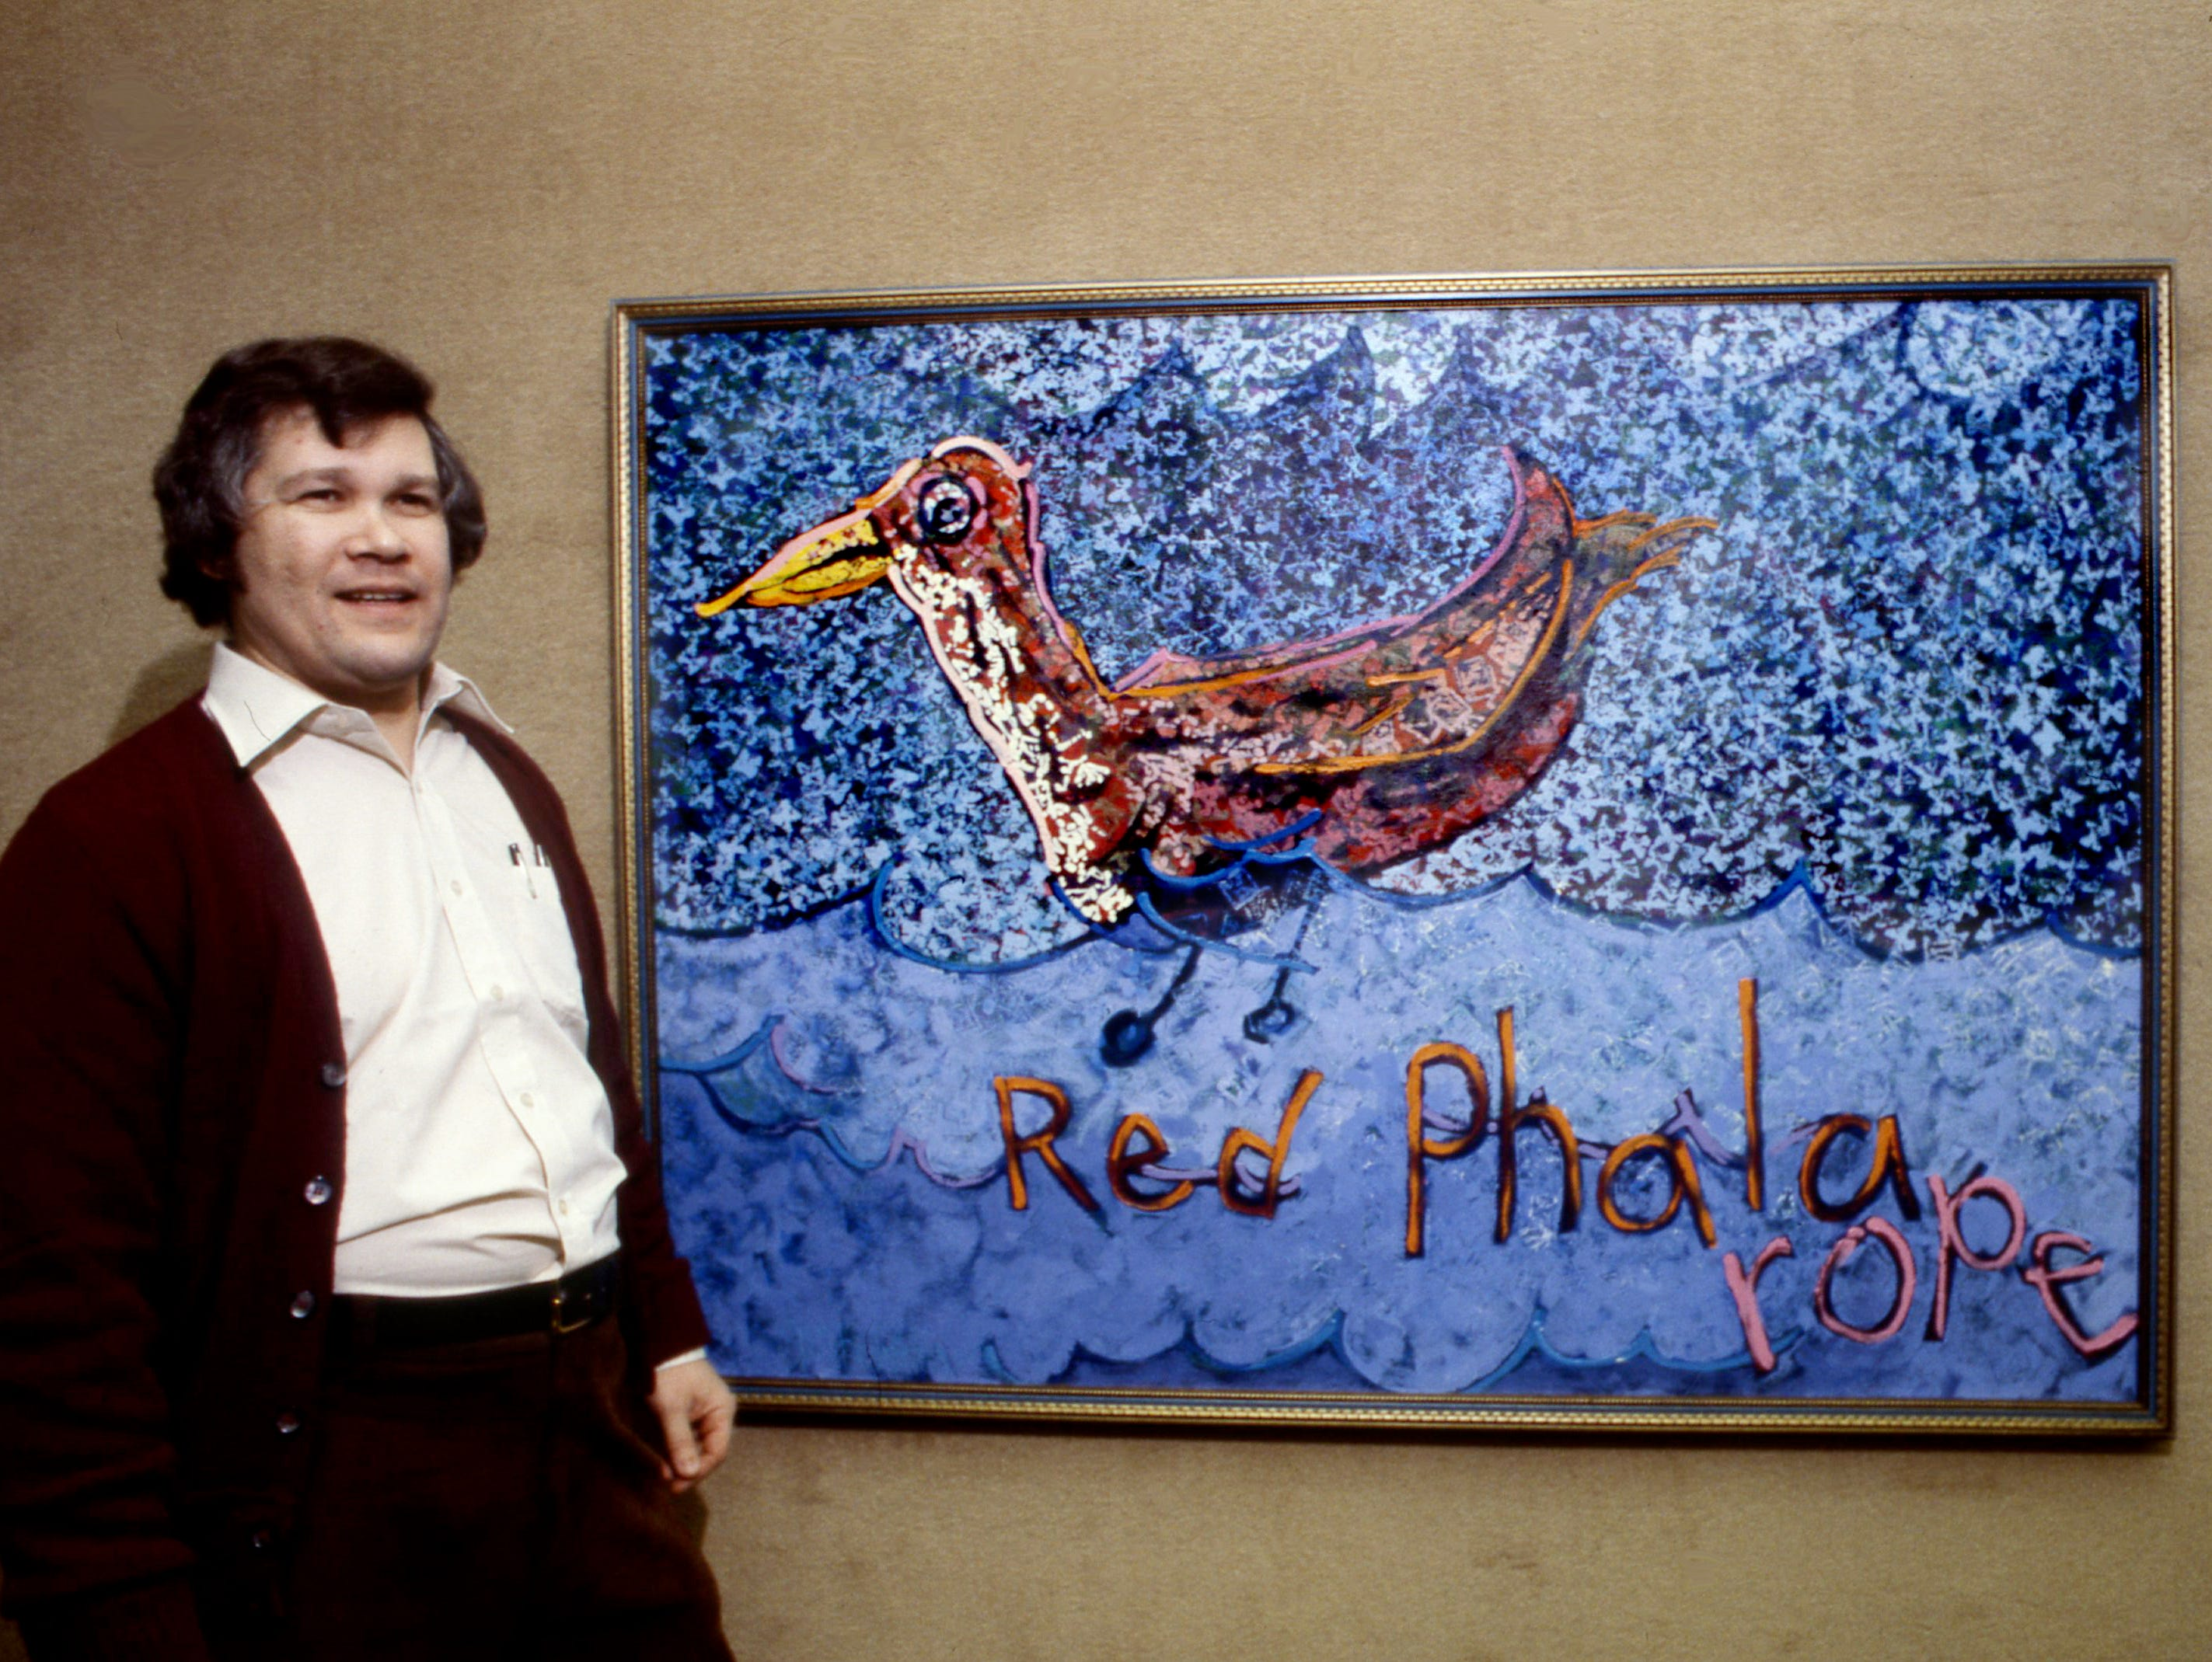 """Max Hochstetler, associate professor of art at Austin Peay State University, stands in front of his large painting inspired by his son's drawing Feb. 6, 1979. Son Andy, 9, drew the red phalarope and the lettering that his father used in his painting, which is in the show """"Images from My House"""" at APSU's Trahern Gallery in Clarksville."""